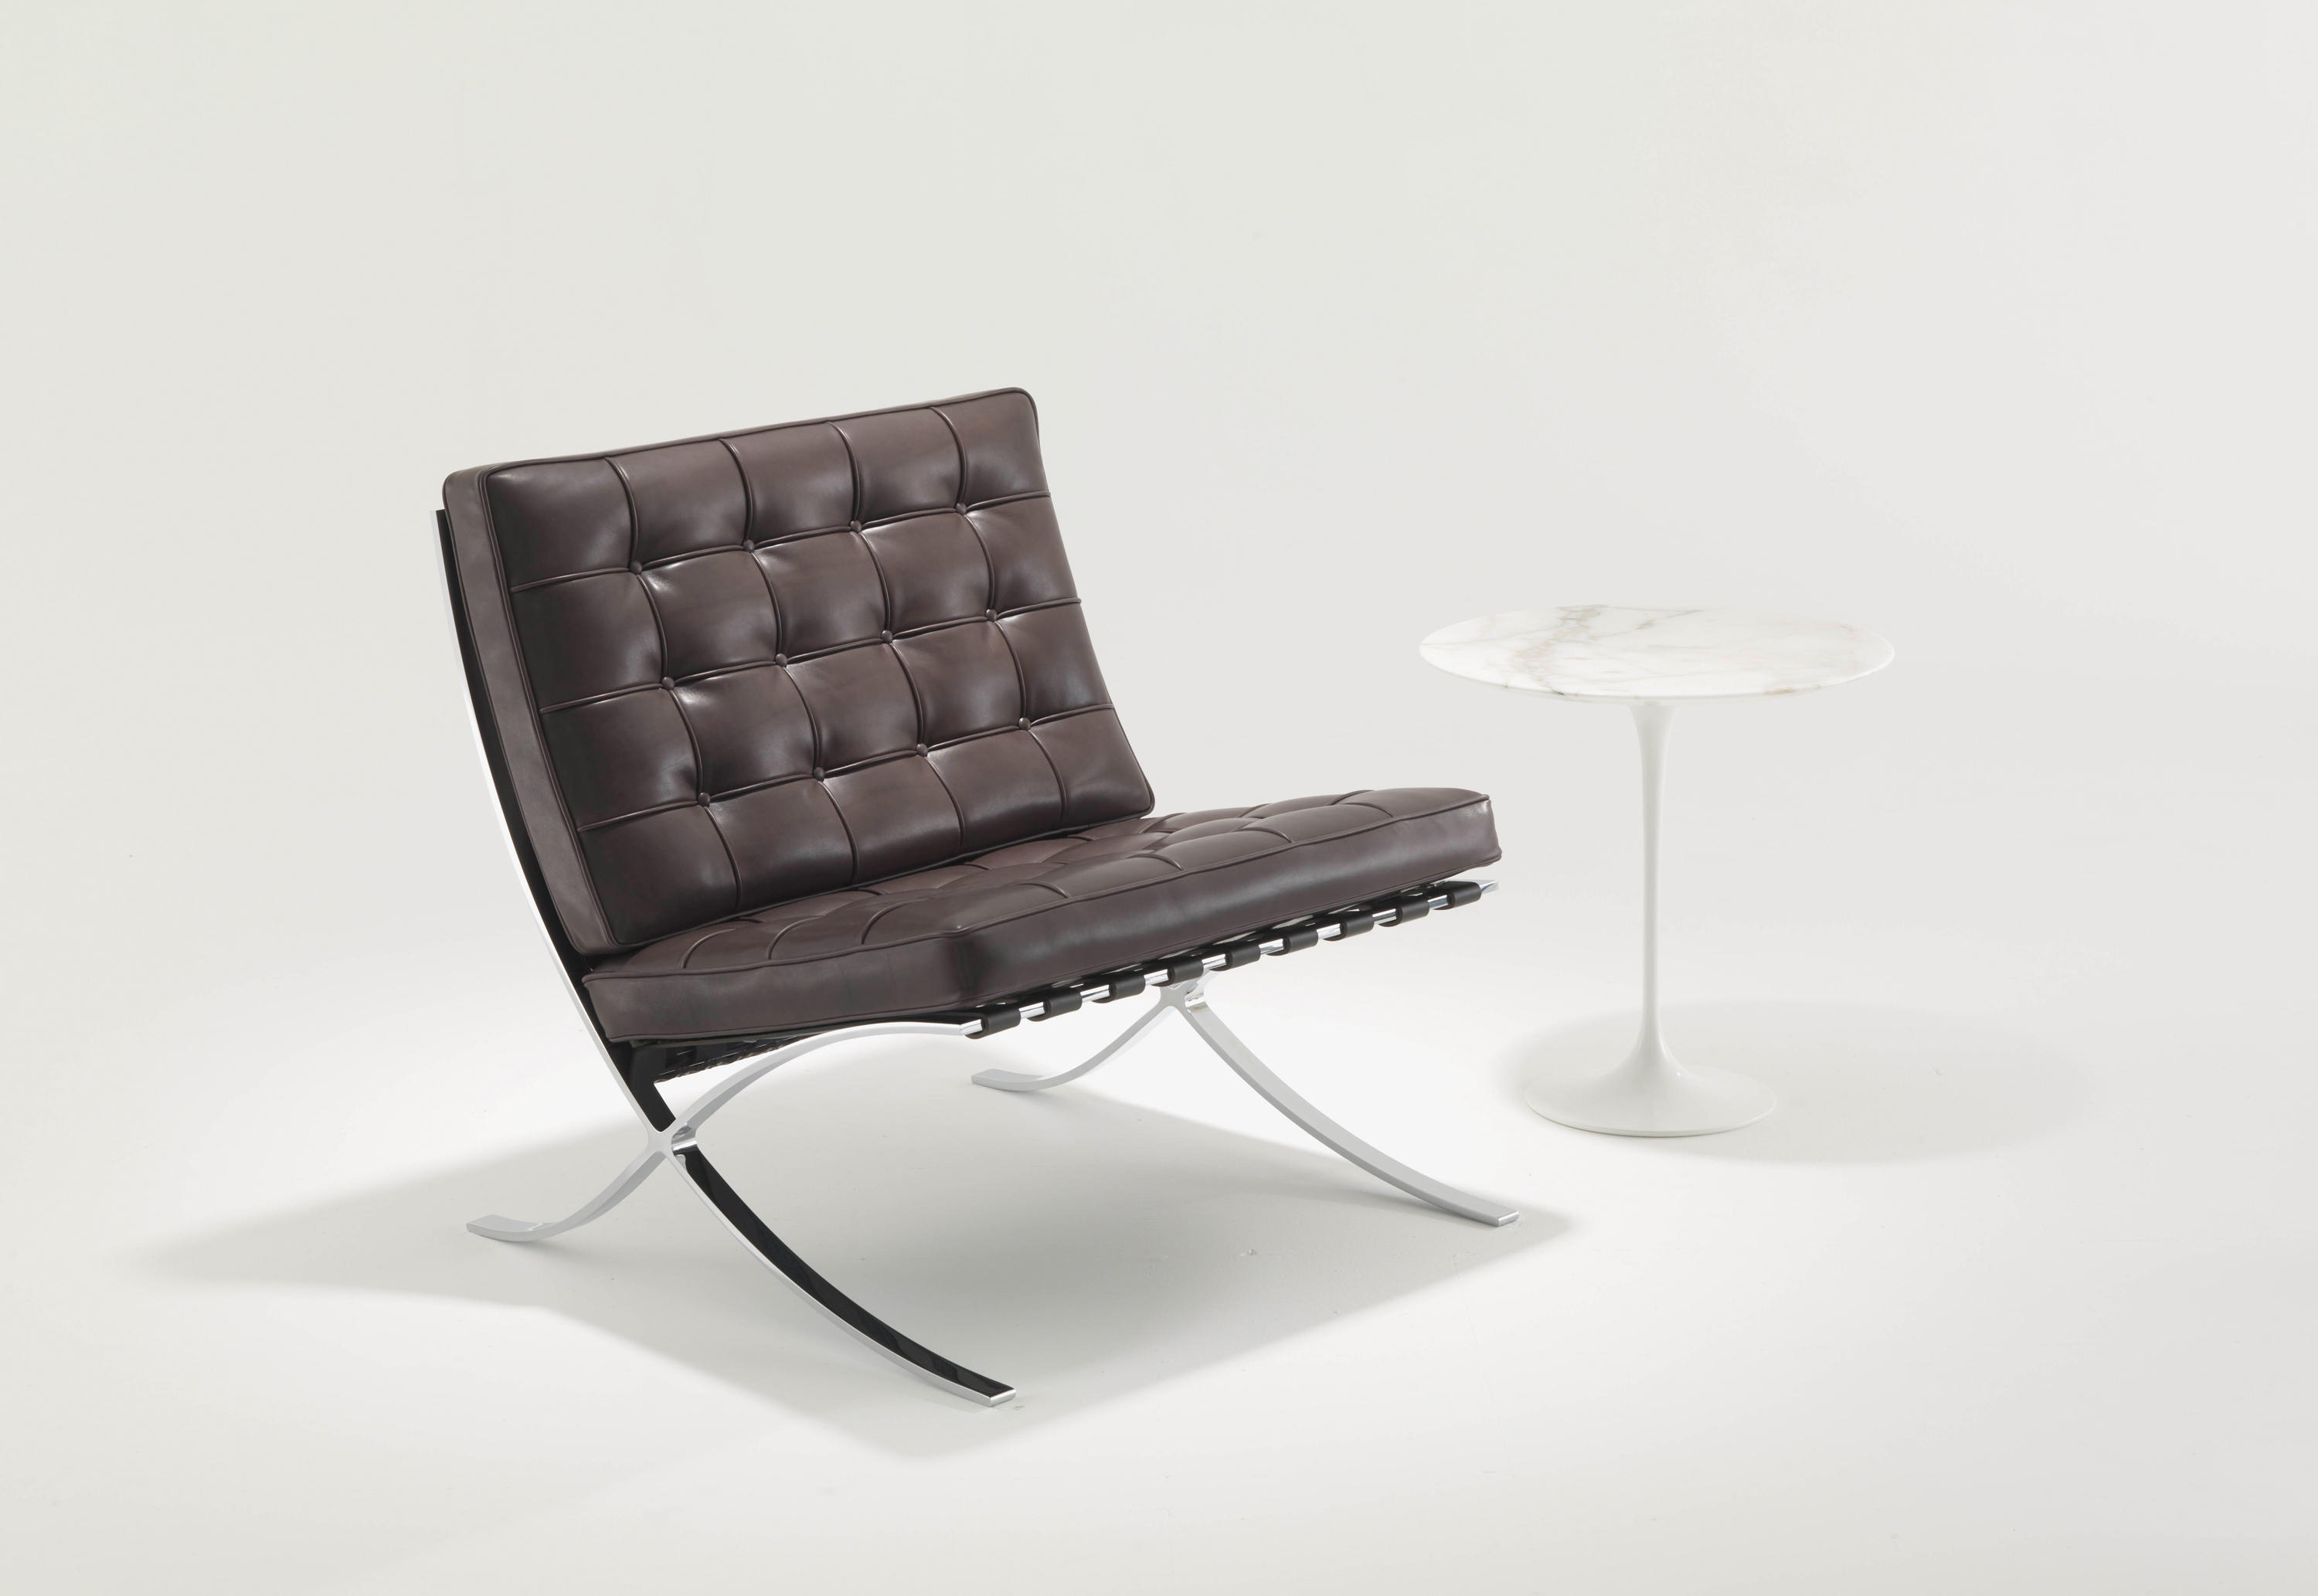 Couchtisch Bauhausstil Barcelona Relax Chair Armchairs From Knoll International